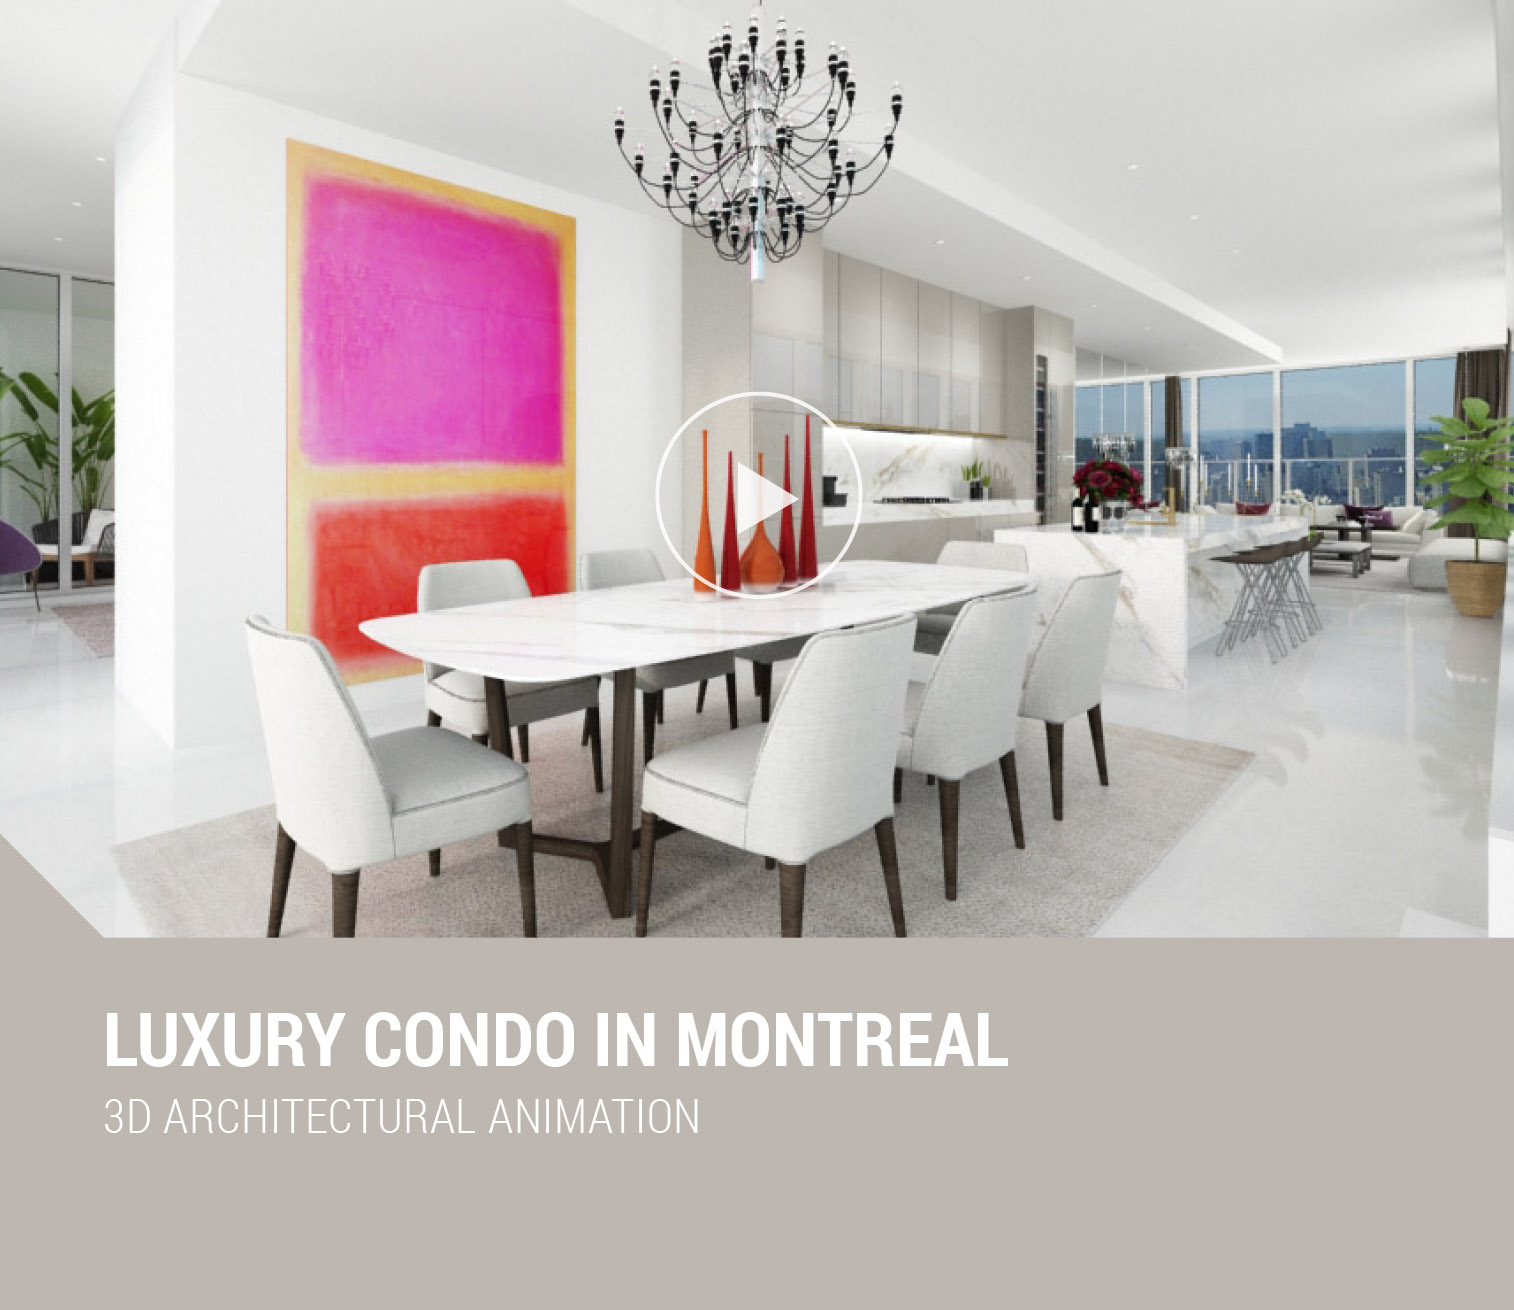 Schema Dimitra Chrona designer, creative director, architectural, 3D visualization, 3D Rendering, branding websites, digital, graphic design, interior design, real estate, luxury property, staging, museum, virtual, art, brochures, exhibitions, logotype, logo, Canada Quebec Montreal Athens Greece schema design luxury condo montreal second floor video small.jpg